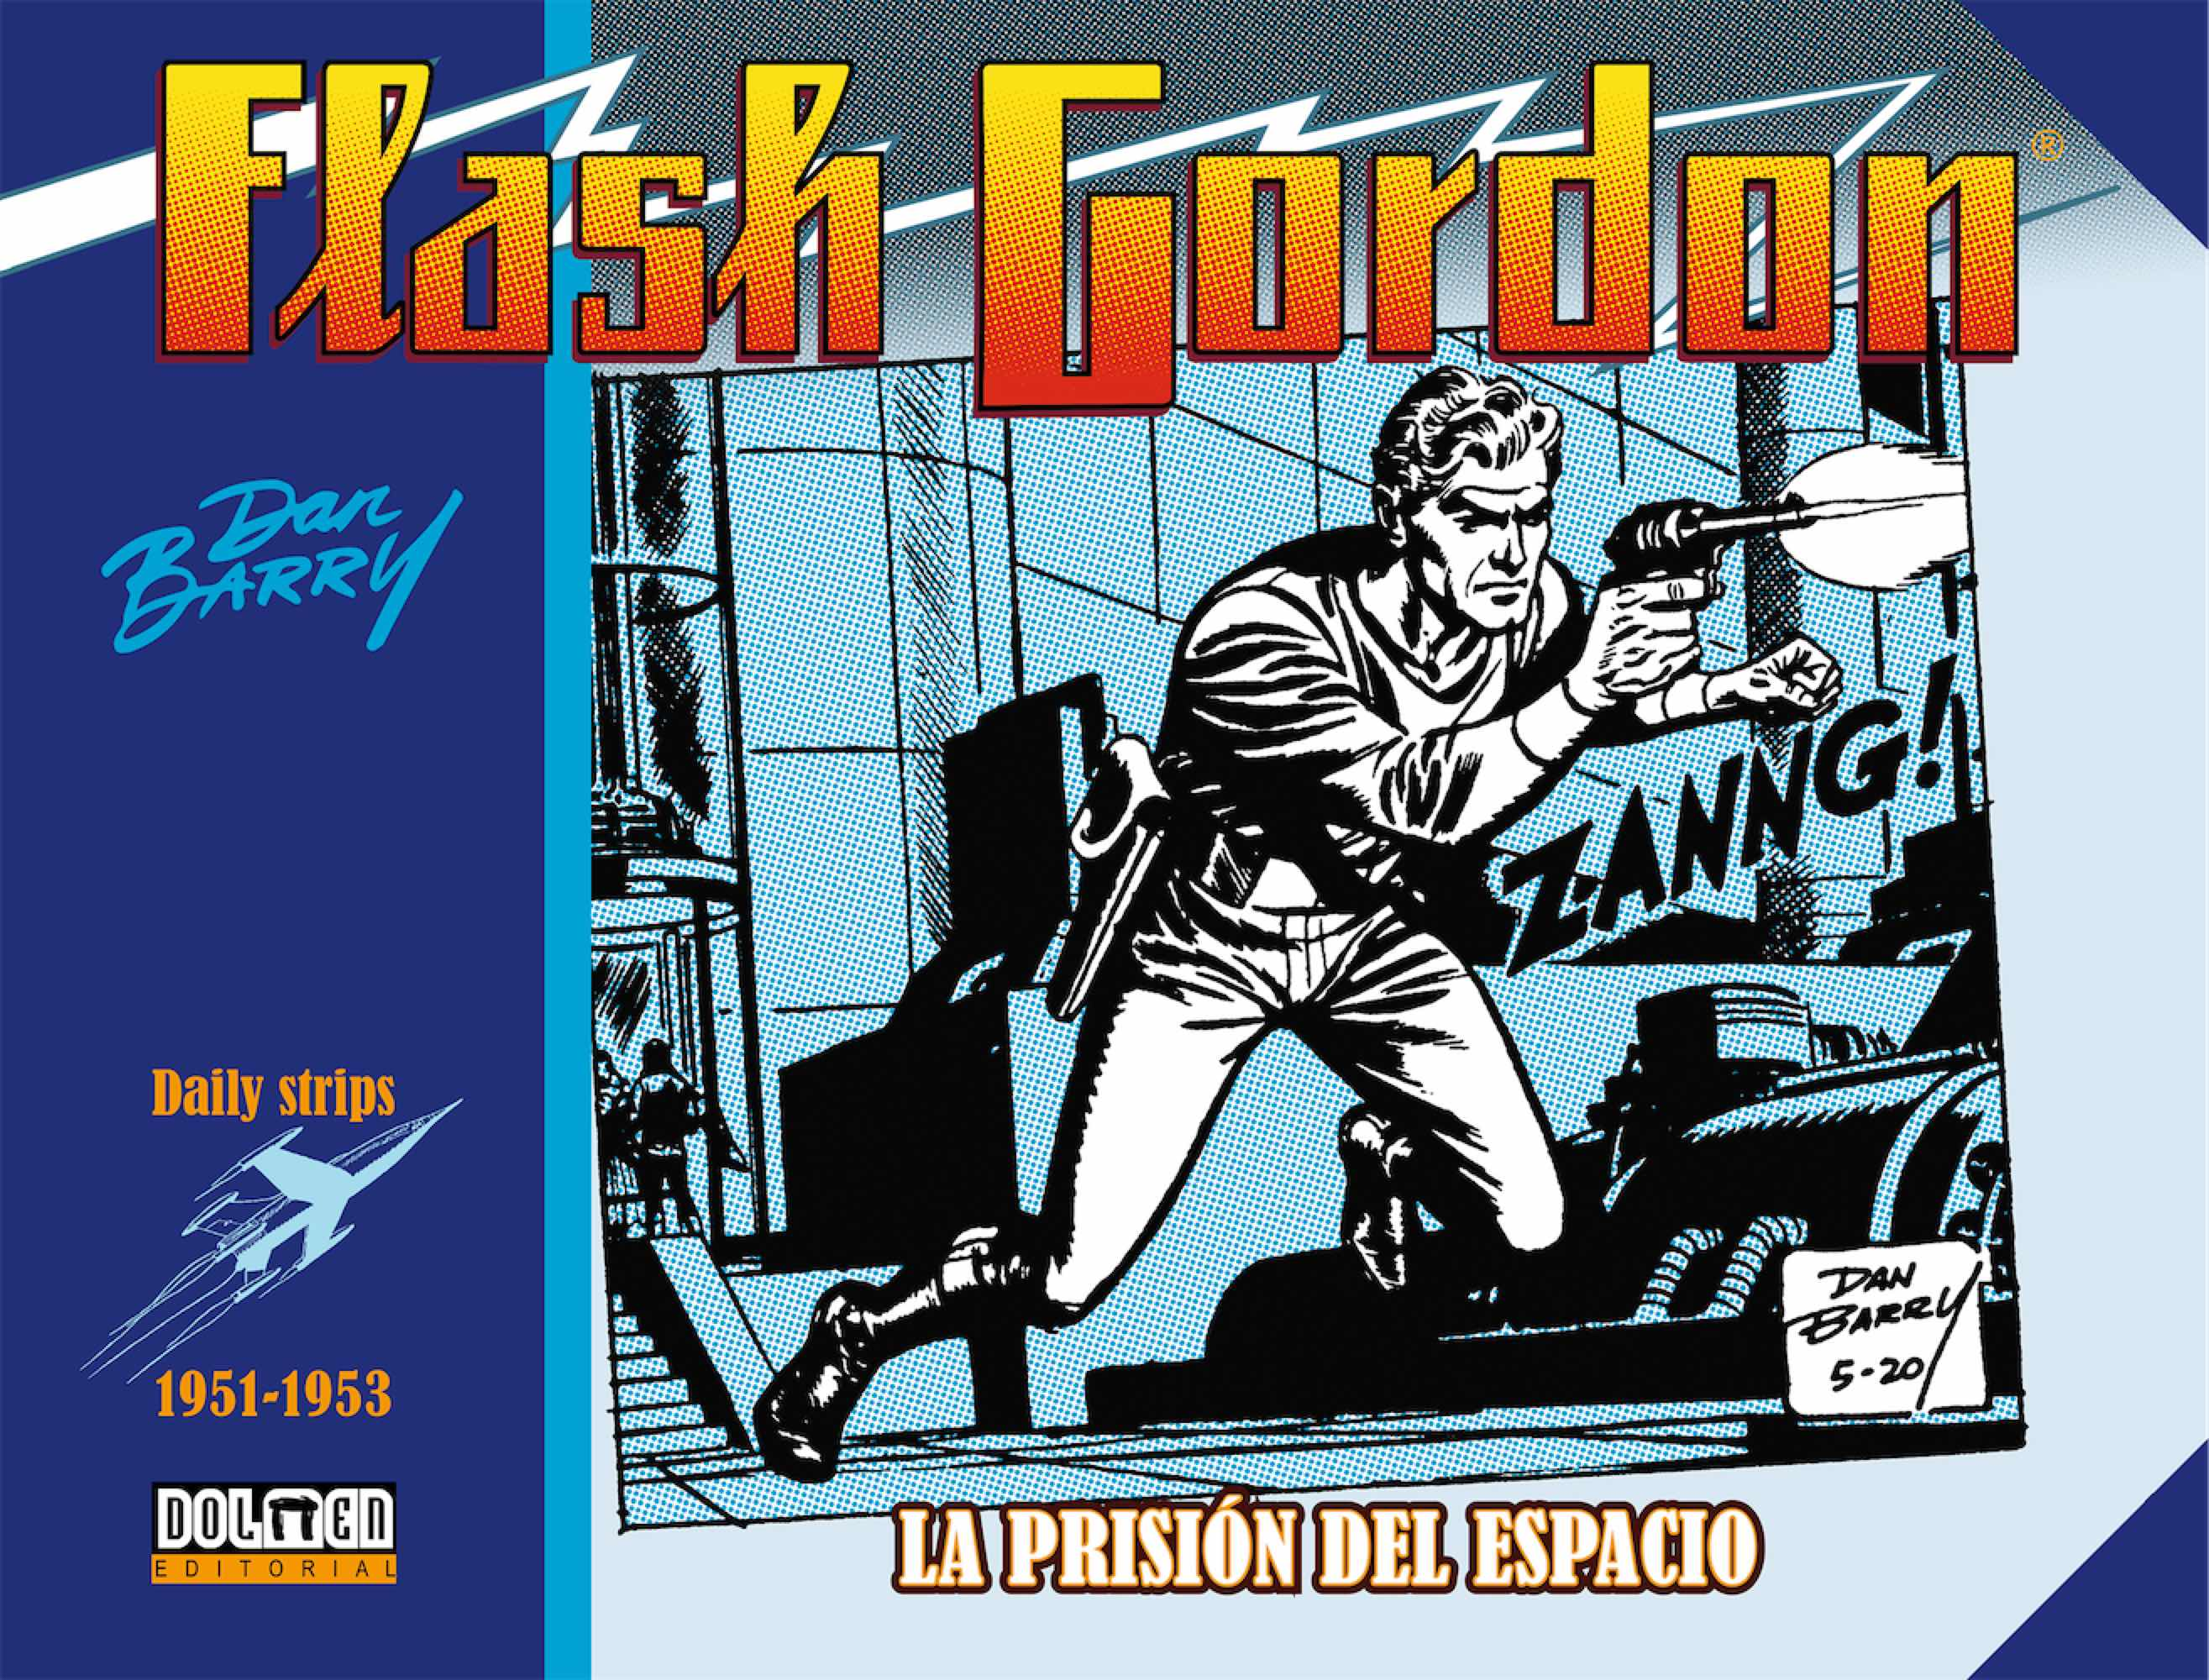 FLASH GORDON. LA PRISION DEL ESPACIO  1951-1953 (DAILY STRIPS)